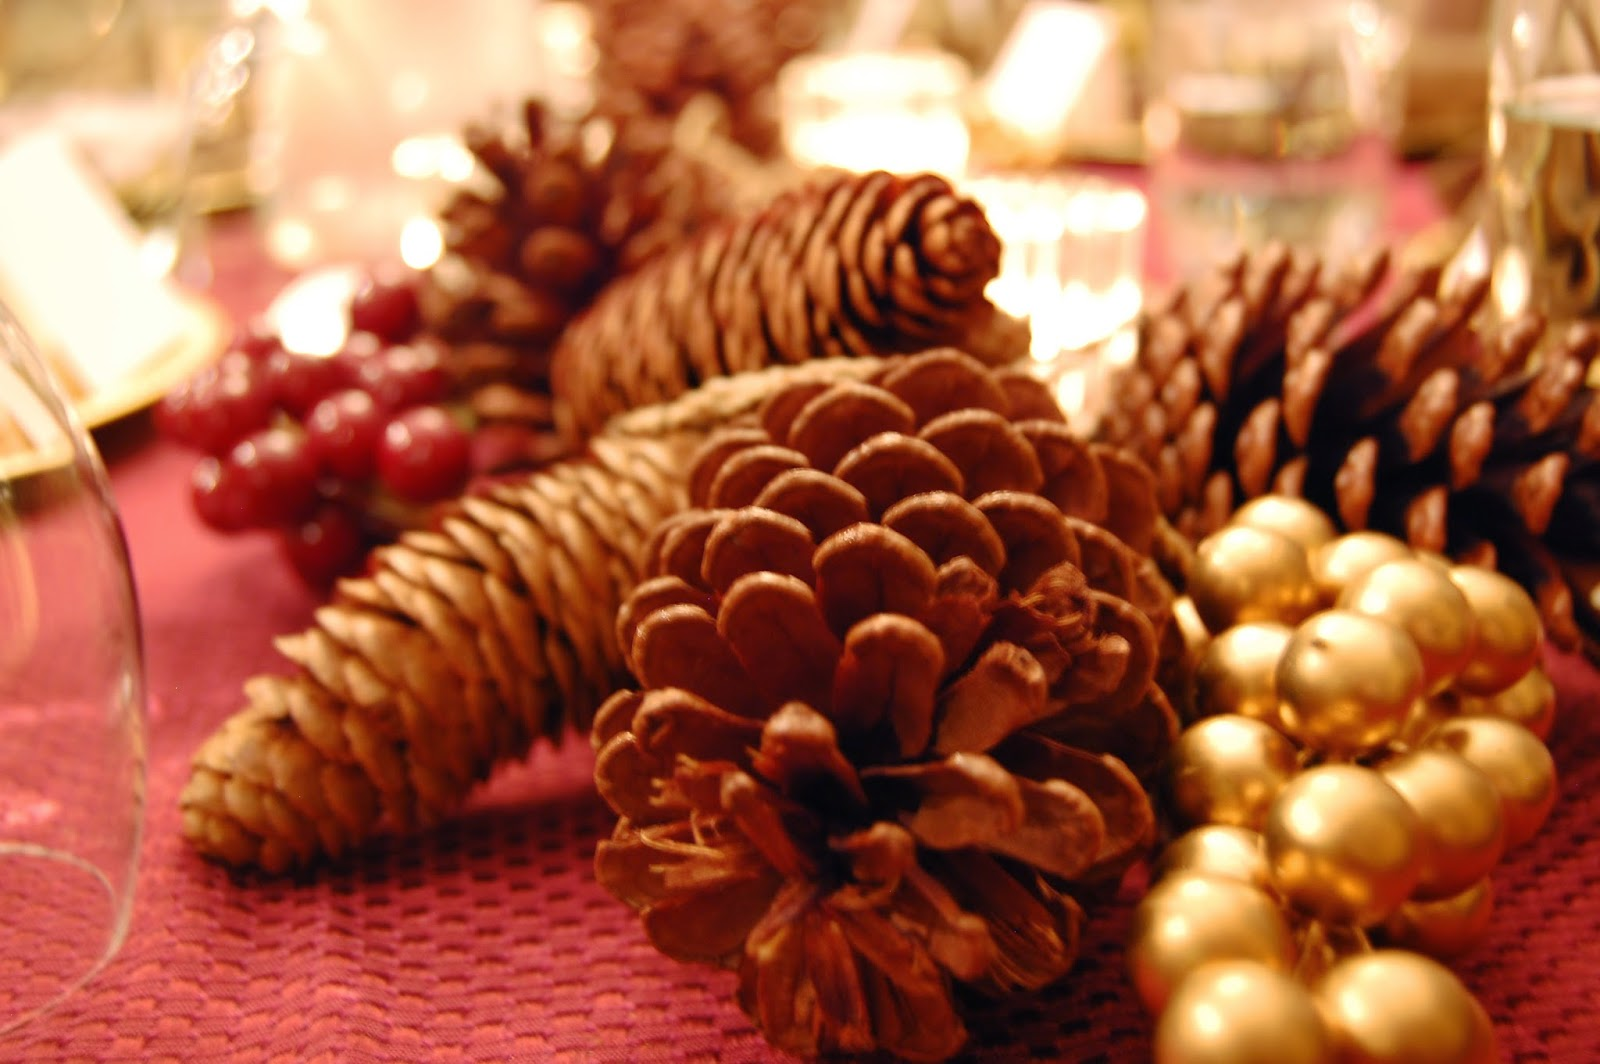 pine cones berry picks holidays white votive candles garland budget decorating design tips table setting arrangement